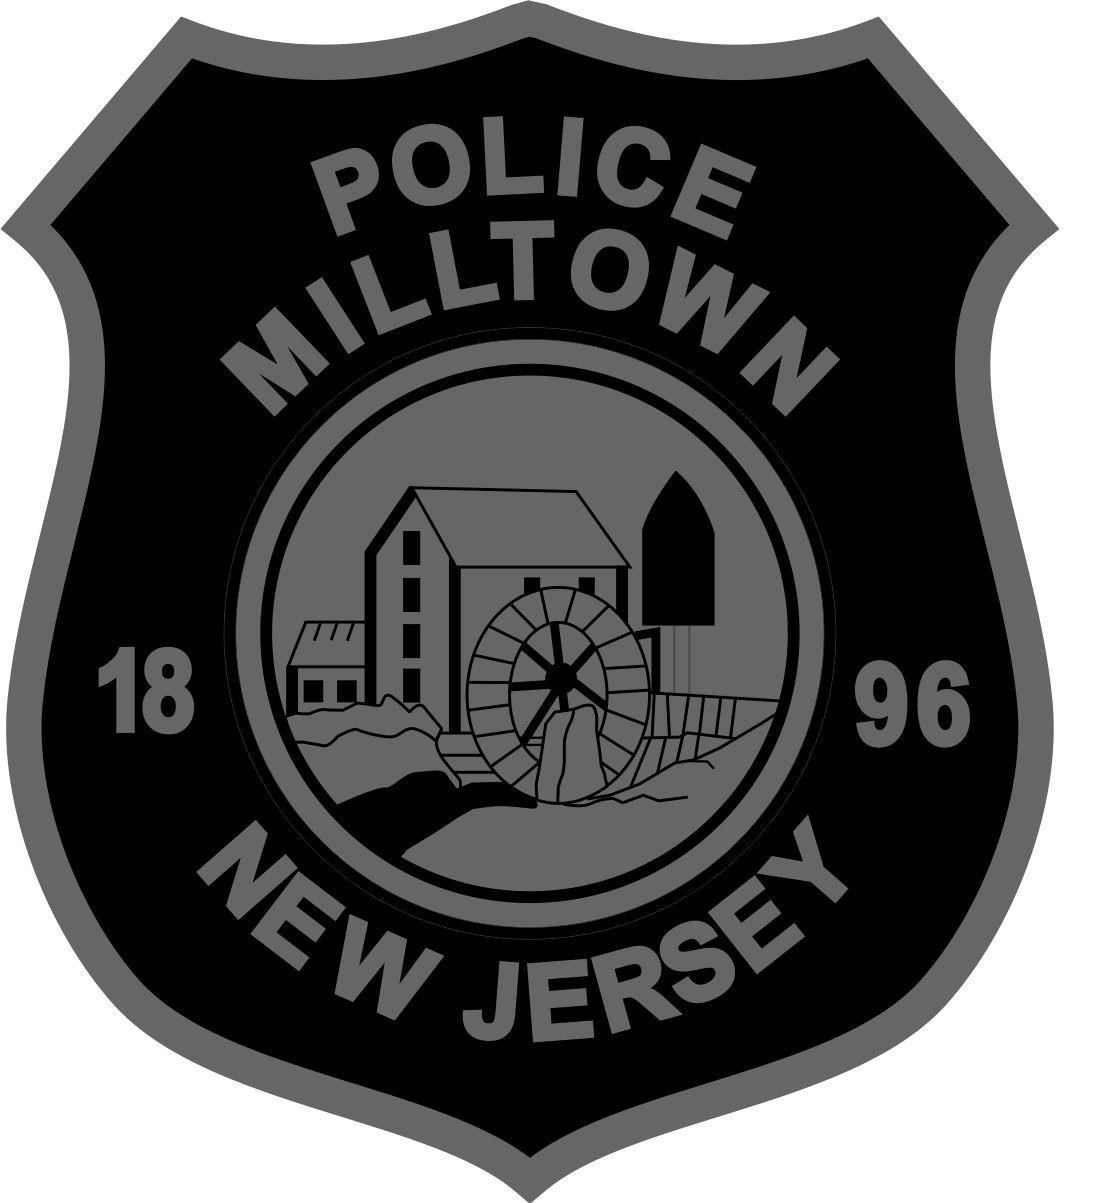 Milltown Police Department Emblem